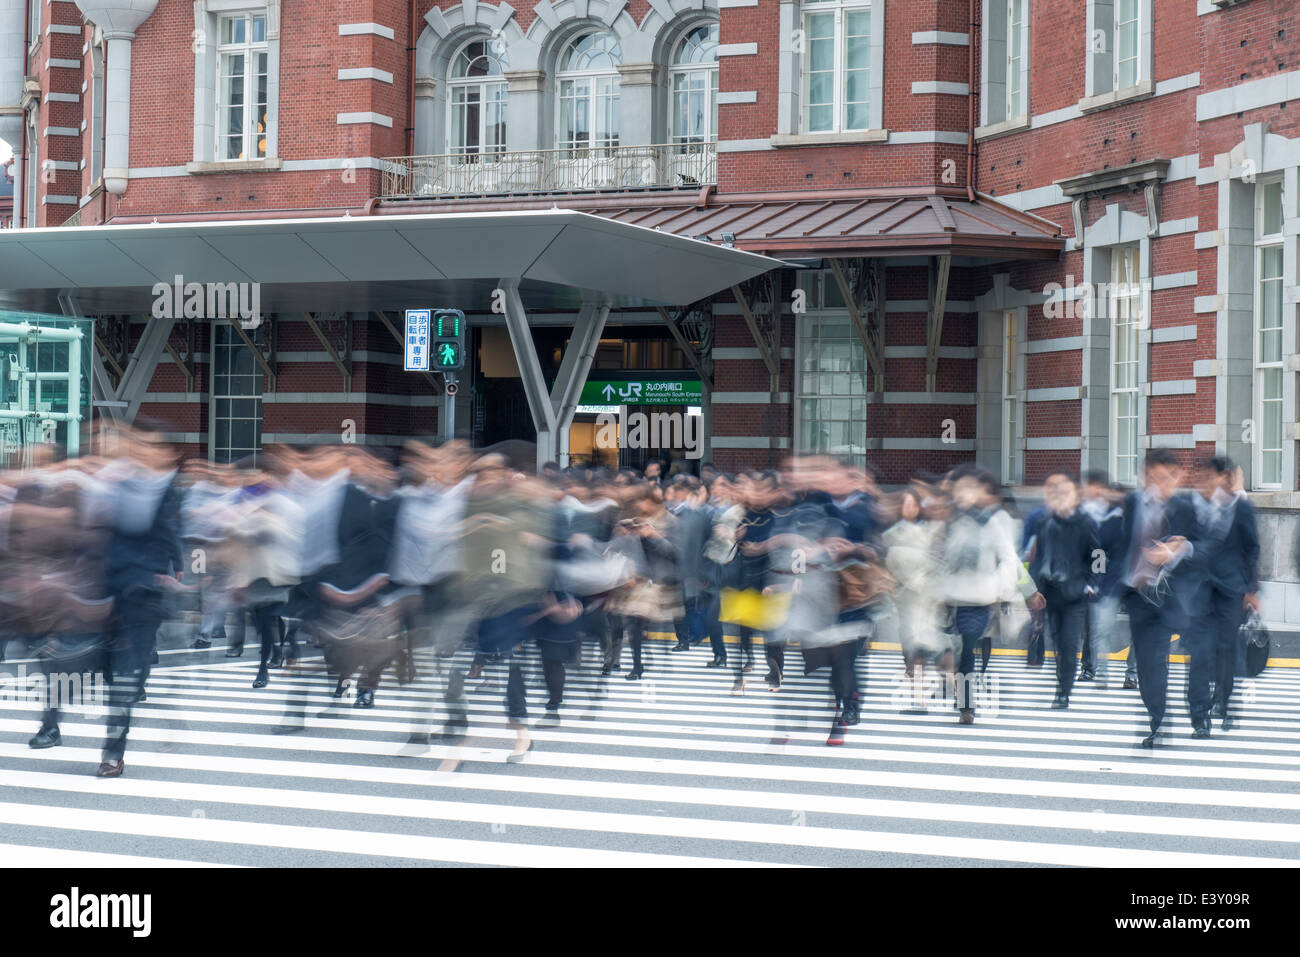 Blurred view of pedestrians crossing city street - Stock Image